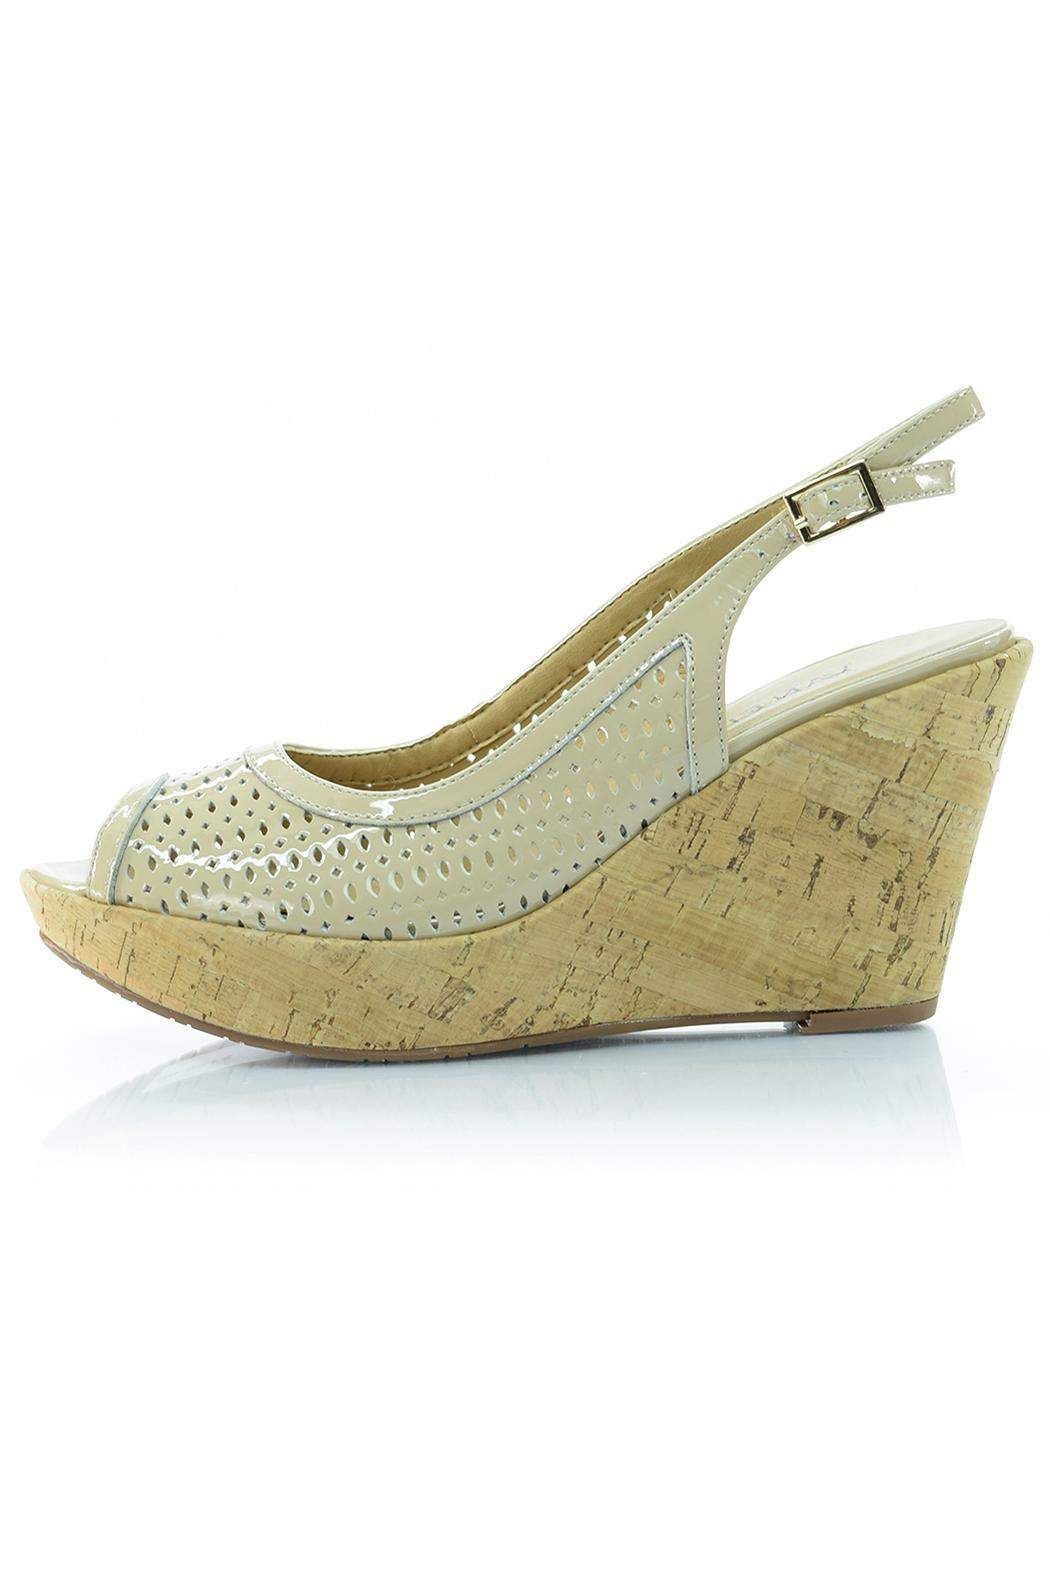 "The perforated patent leather on this Vaneli wedge is perfectly complimented by the cork heel.     Heel height: 3.5""; 1"" platform    Patent Leather Wedge by Vaneli. Shoes - Wedges South Carolina"